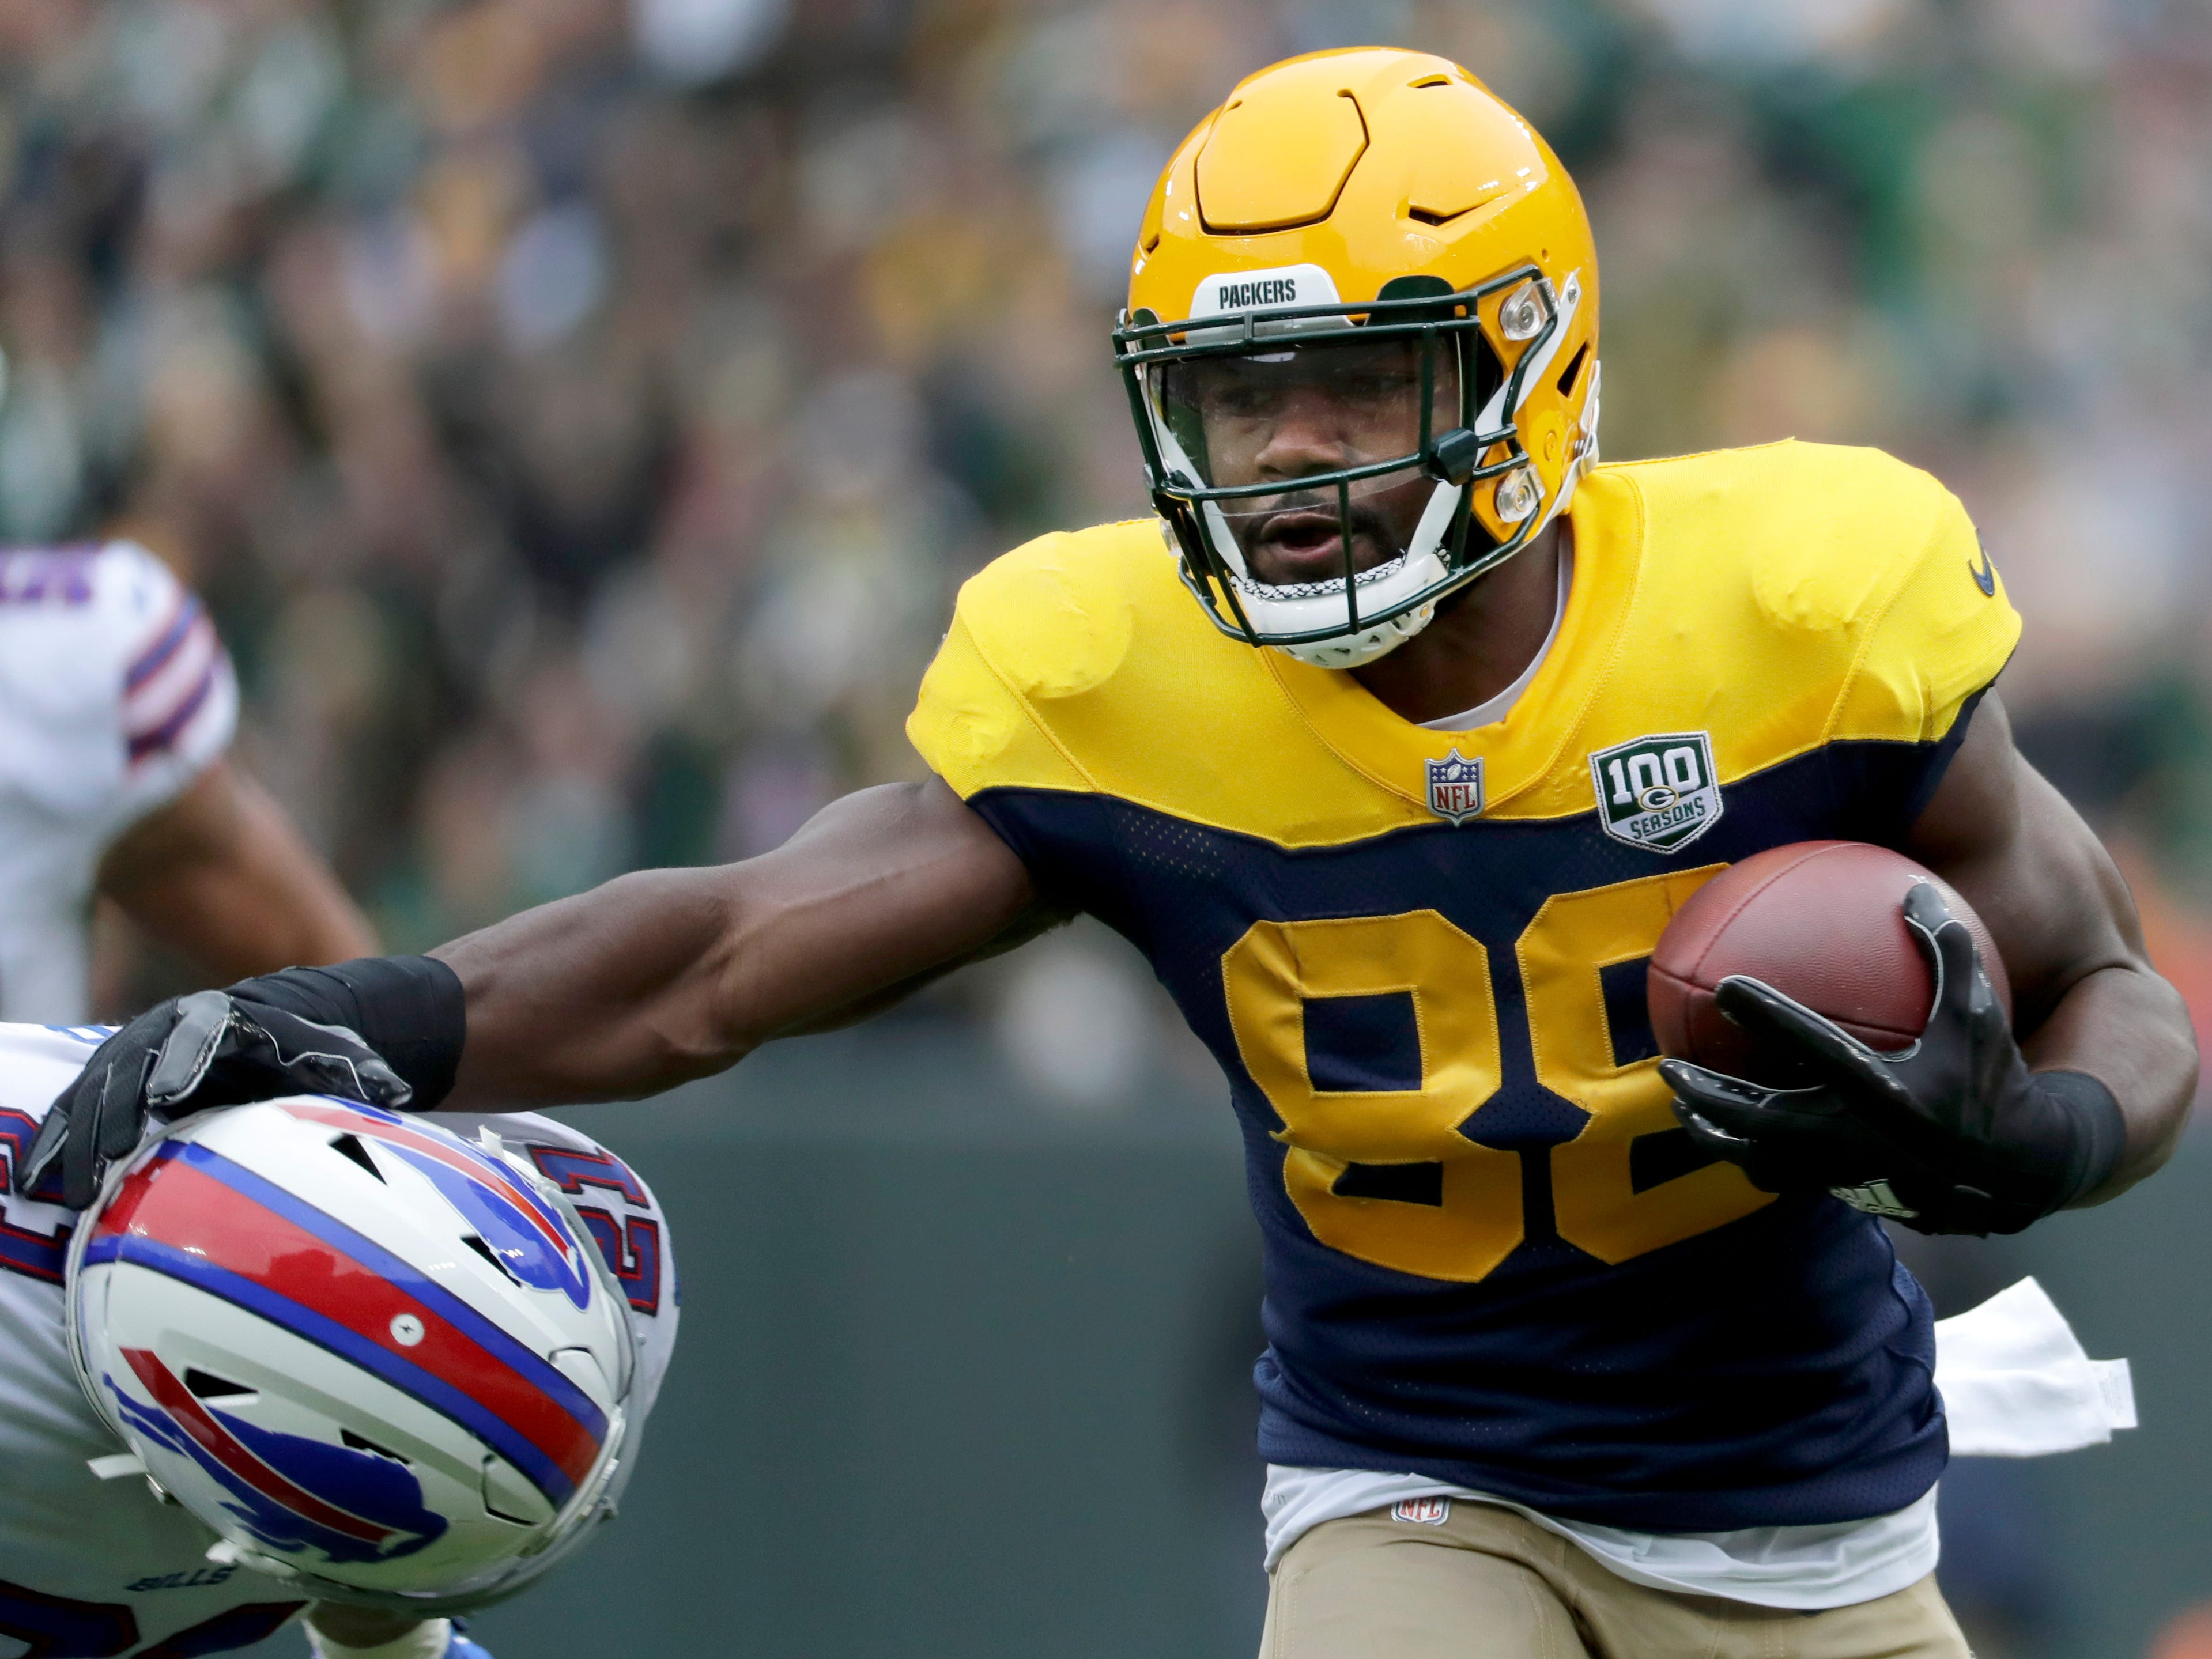 Green Bay Packers running back Ty Montgomery on a first quarter catch and run against the the Buffalo Bills on Sunday, September 30, 2018, at Lambeau Field in Green Bay, Wis. Wm. Glasheen/USA TODAY NETWORK-Wisconsin.